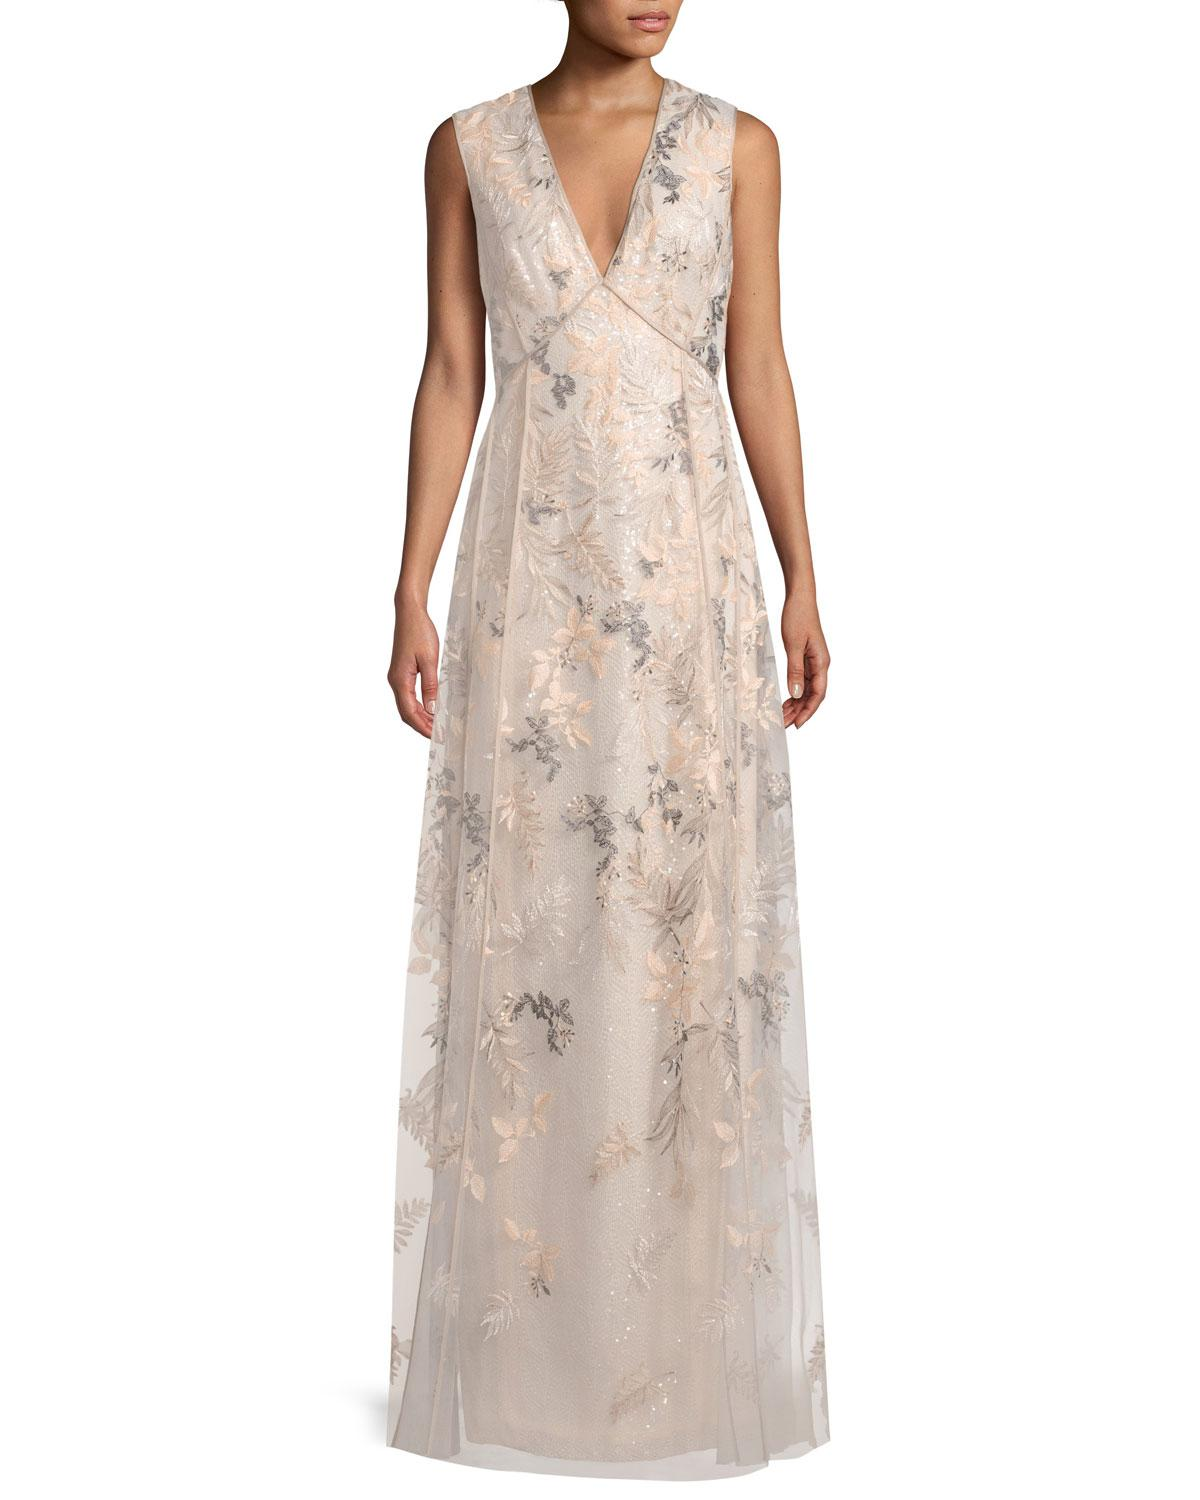 Lyst - J. Mendel Floral-embroidered Sleeveless Evening Gown in Pink